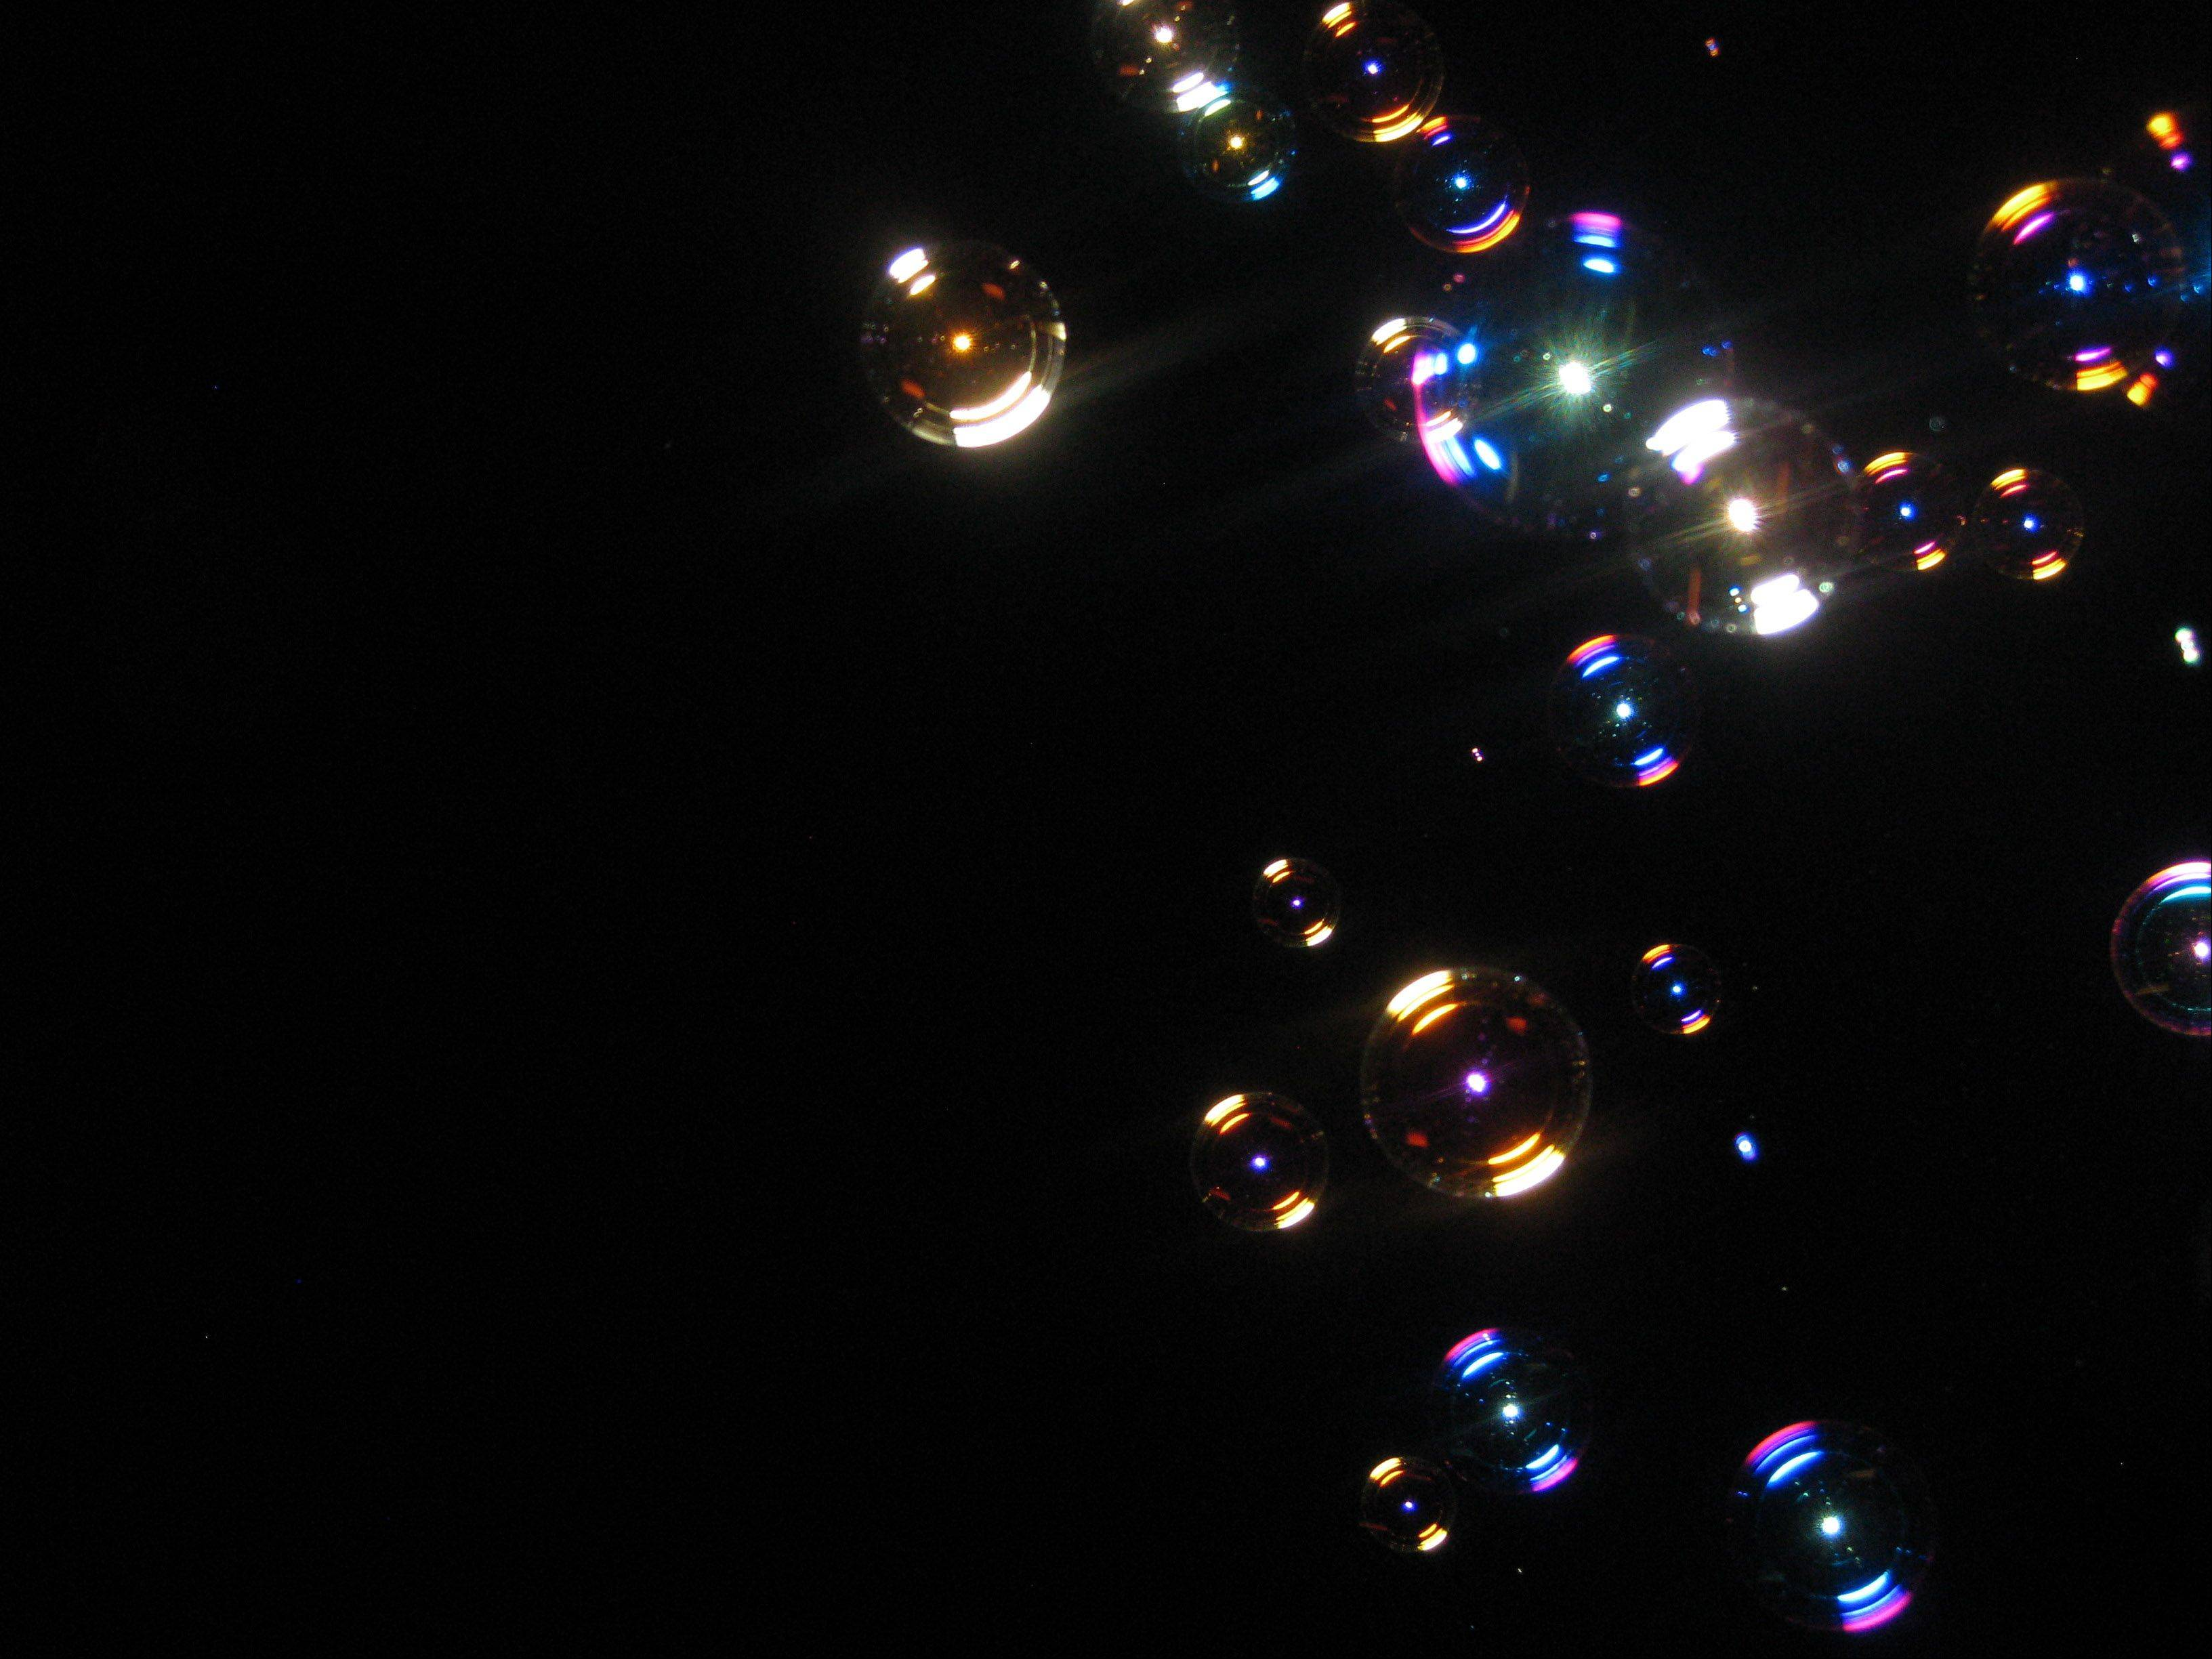 Sitting on our deck at night, my son blew these bubbles. I grabbed my camera to capture these beautiful orbs floating into the evening sky.